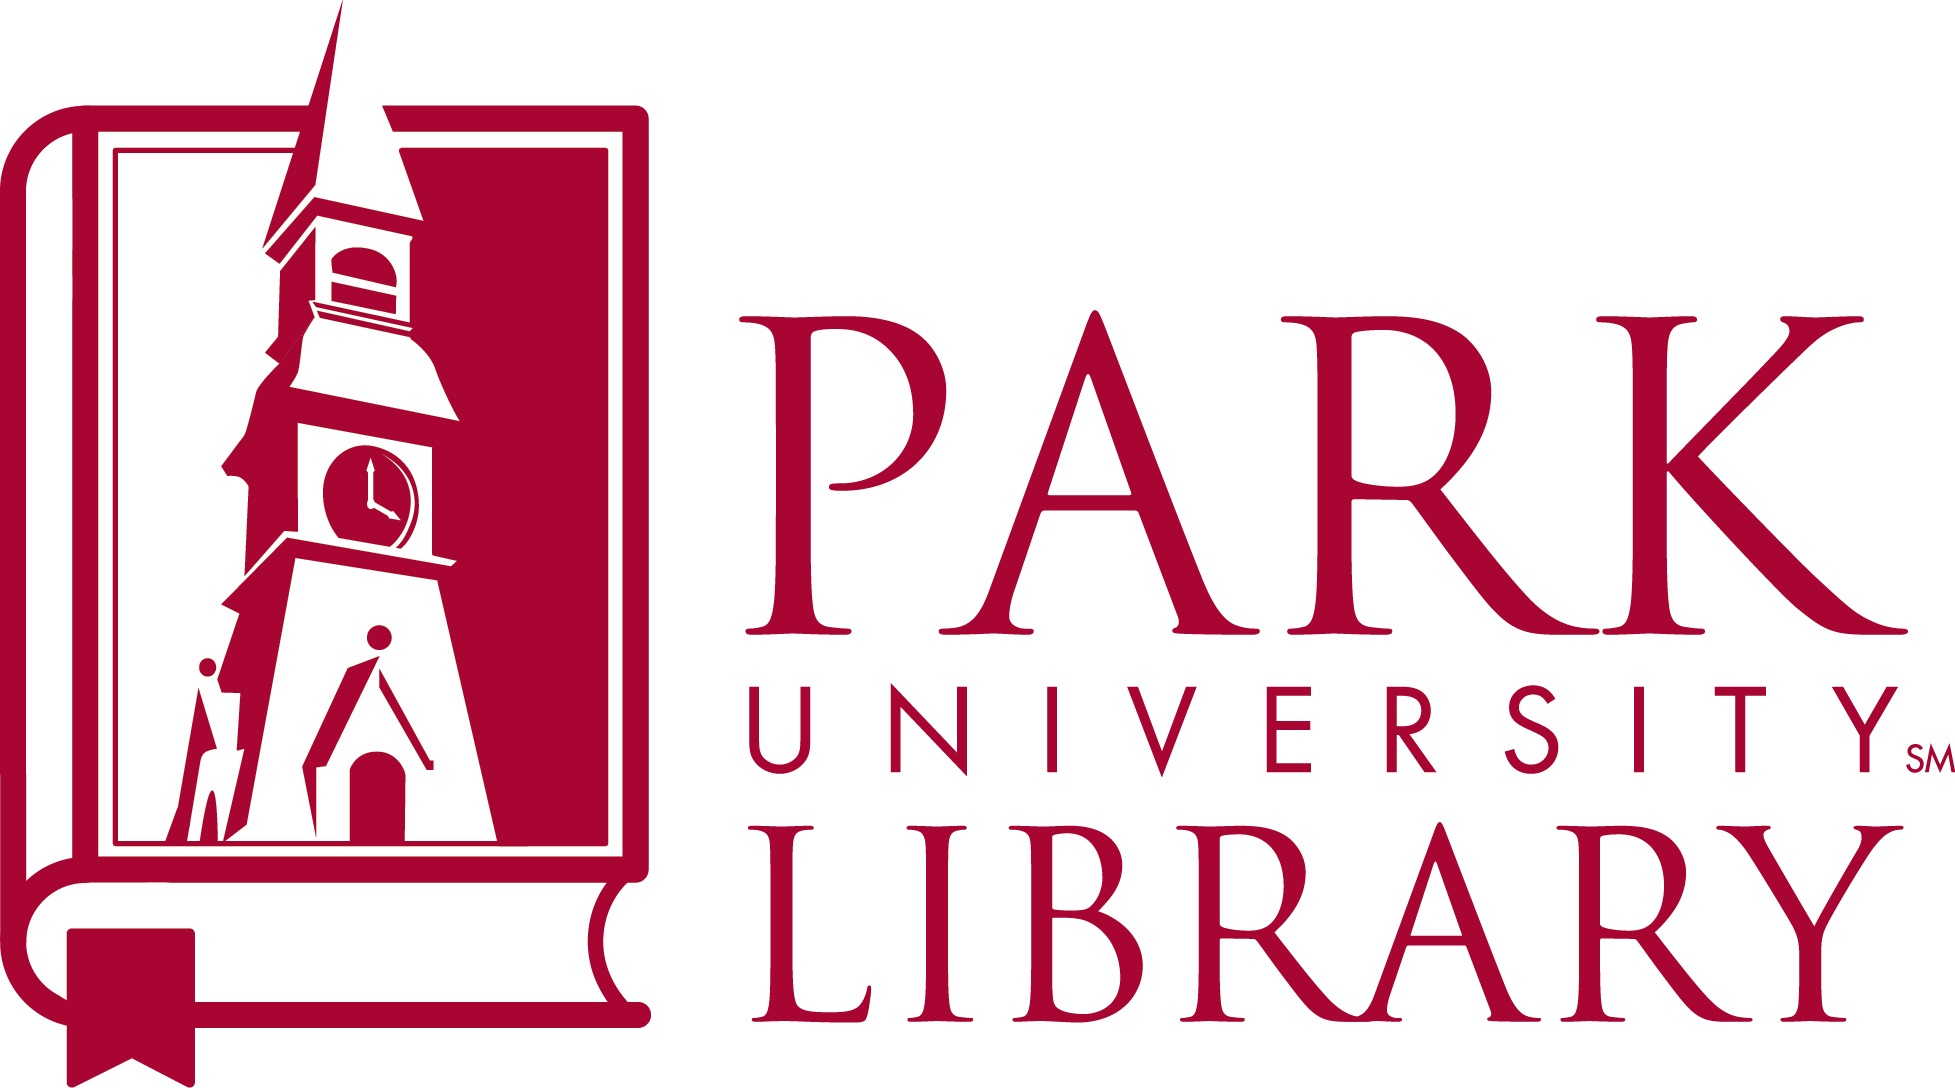 A maroon and white image of the Park library logo